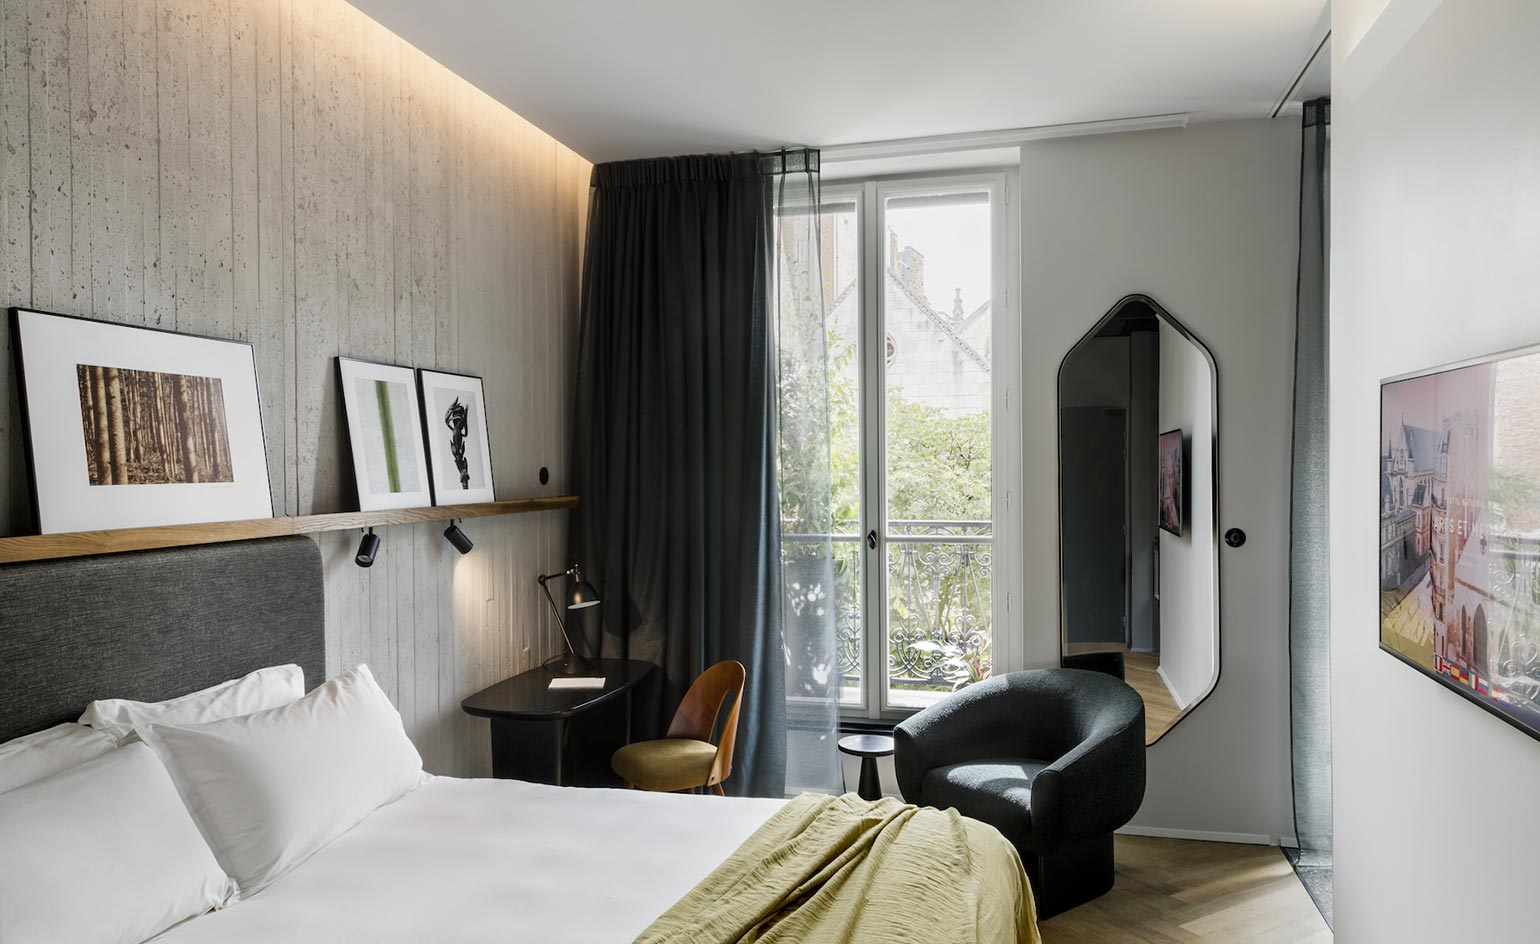 Hotel national des arts et m tiers hotel review paris for Hotel design 2h de paris